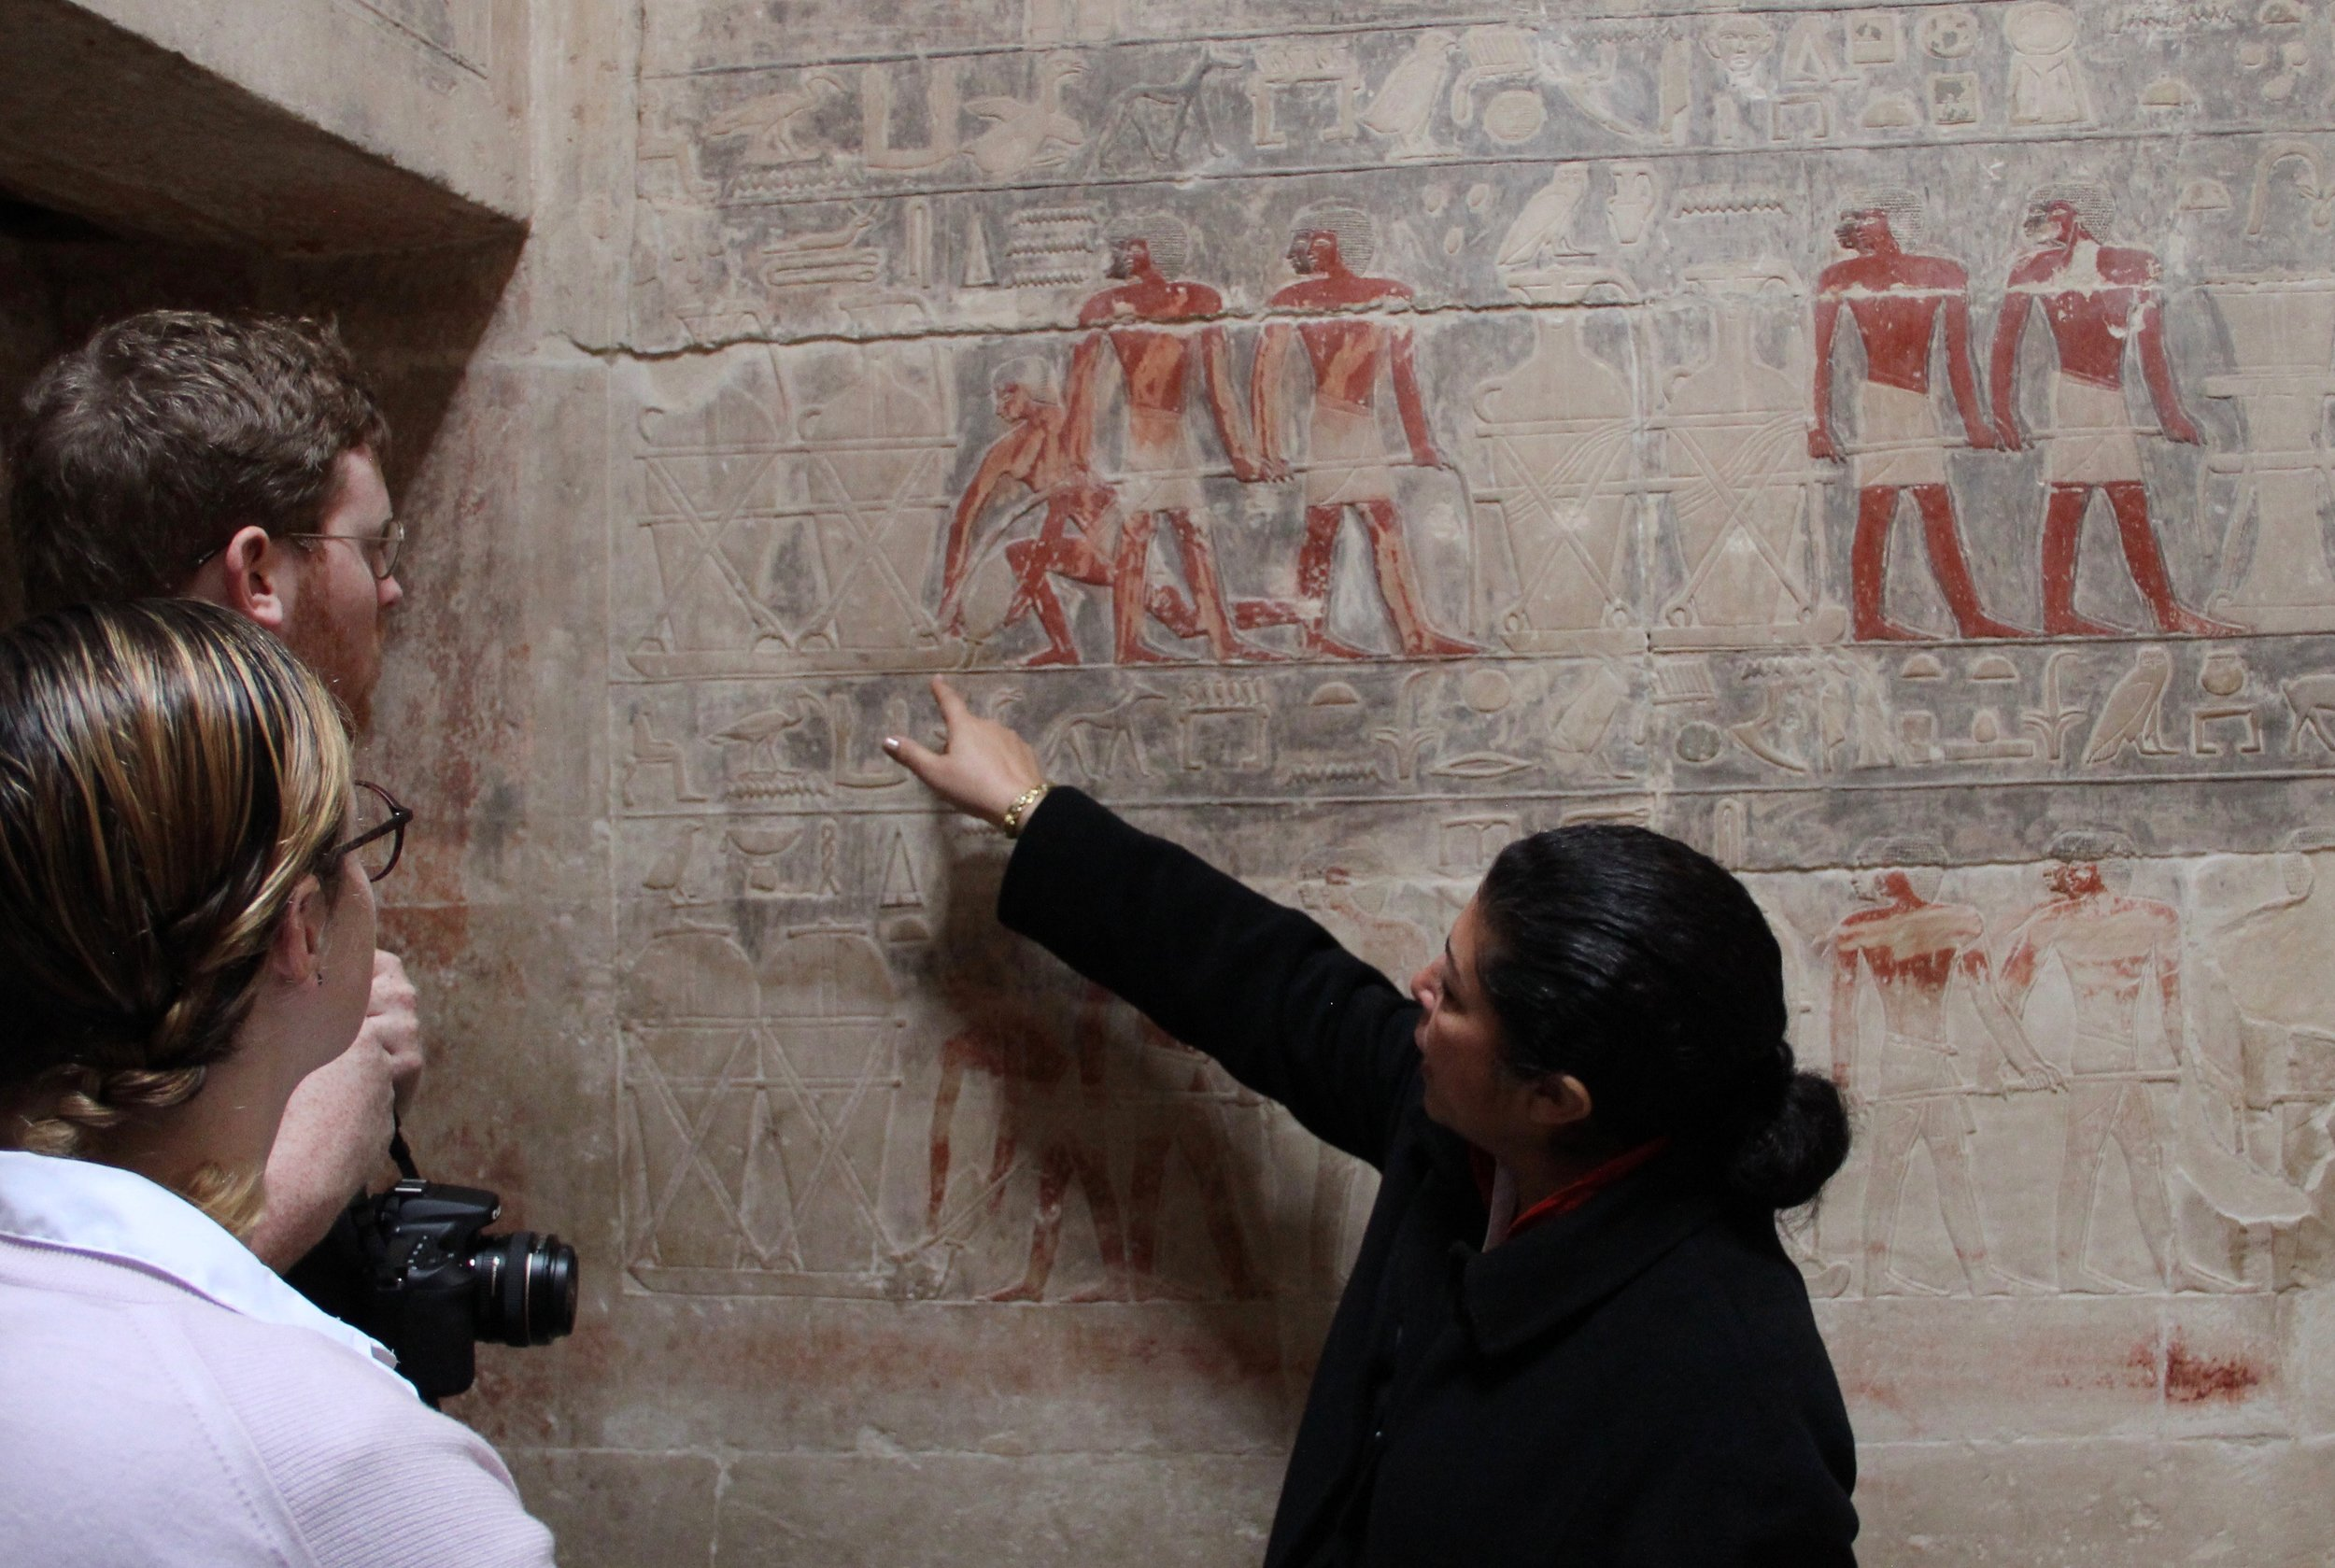 The paintings are so rich and detailed it was essential to have Hala, an egyptologist, explain them to us.